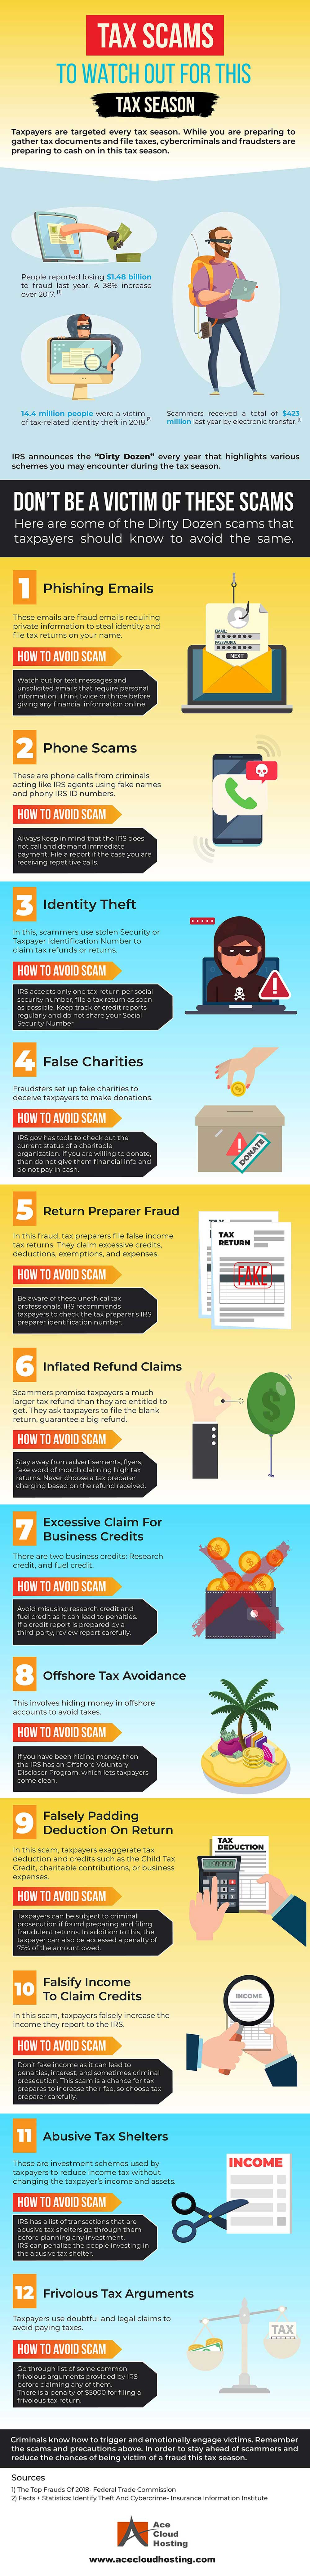 12 Tax Scams To Watch Out This Tax Season [Infographic]